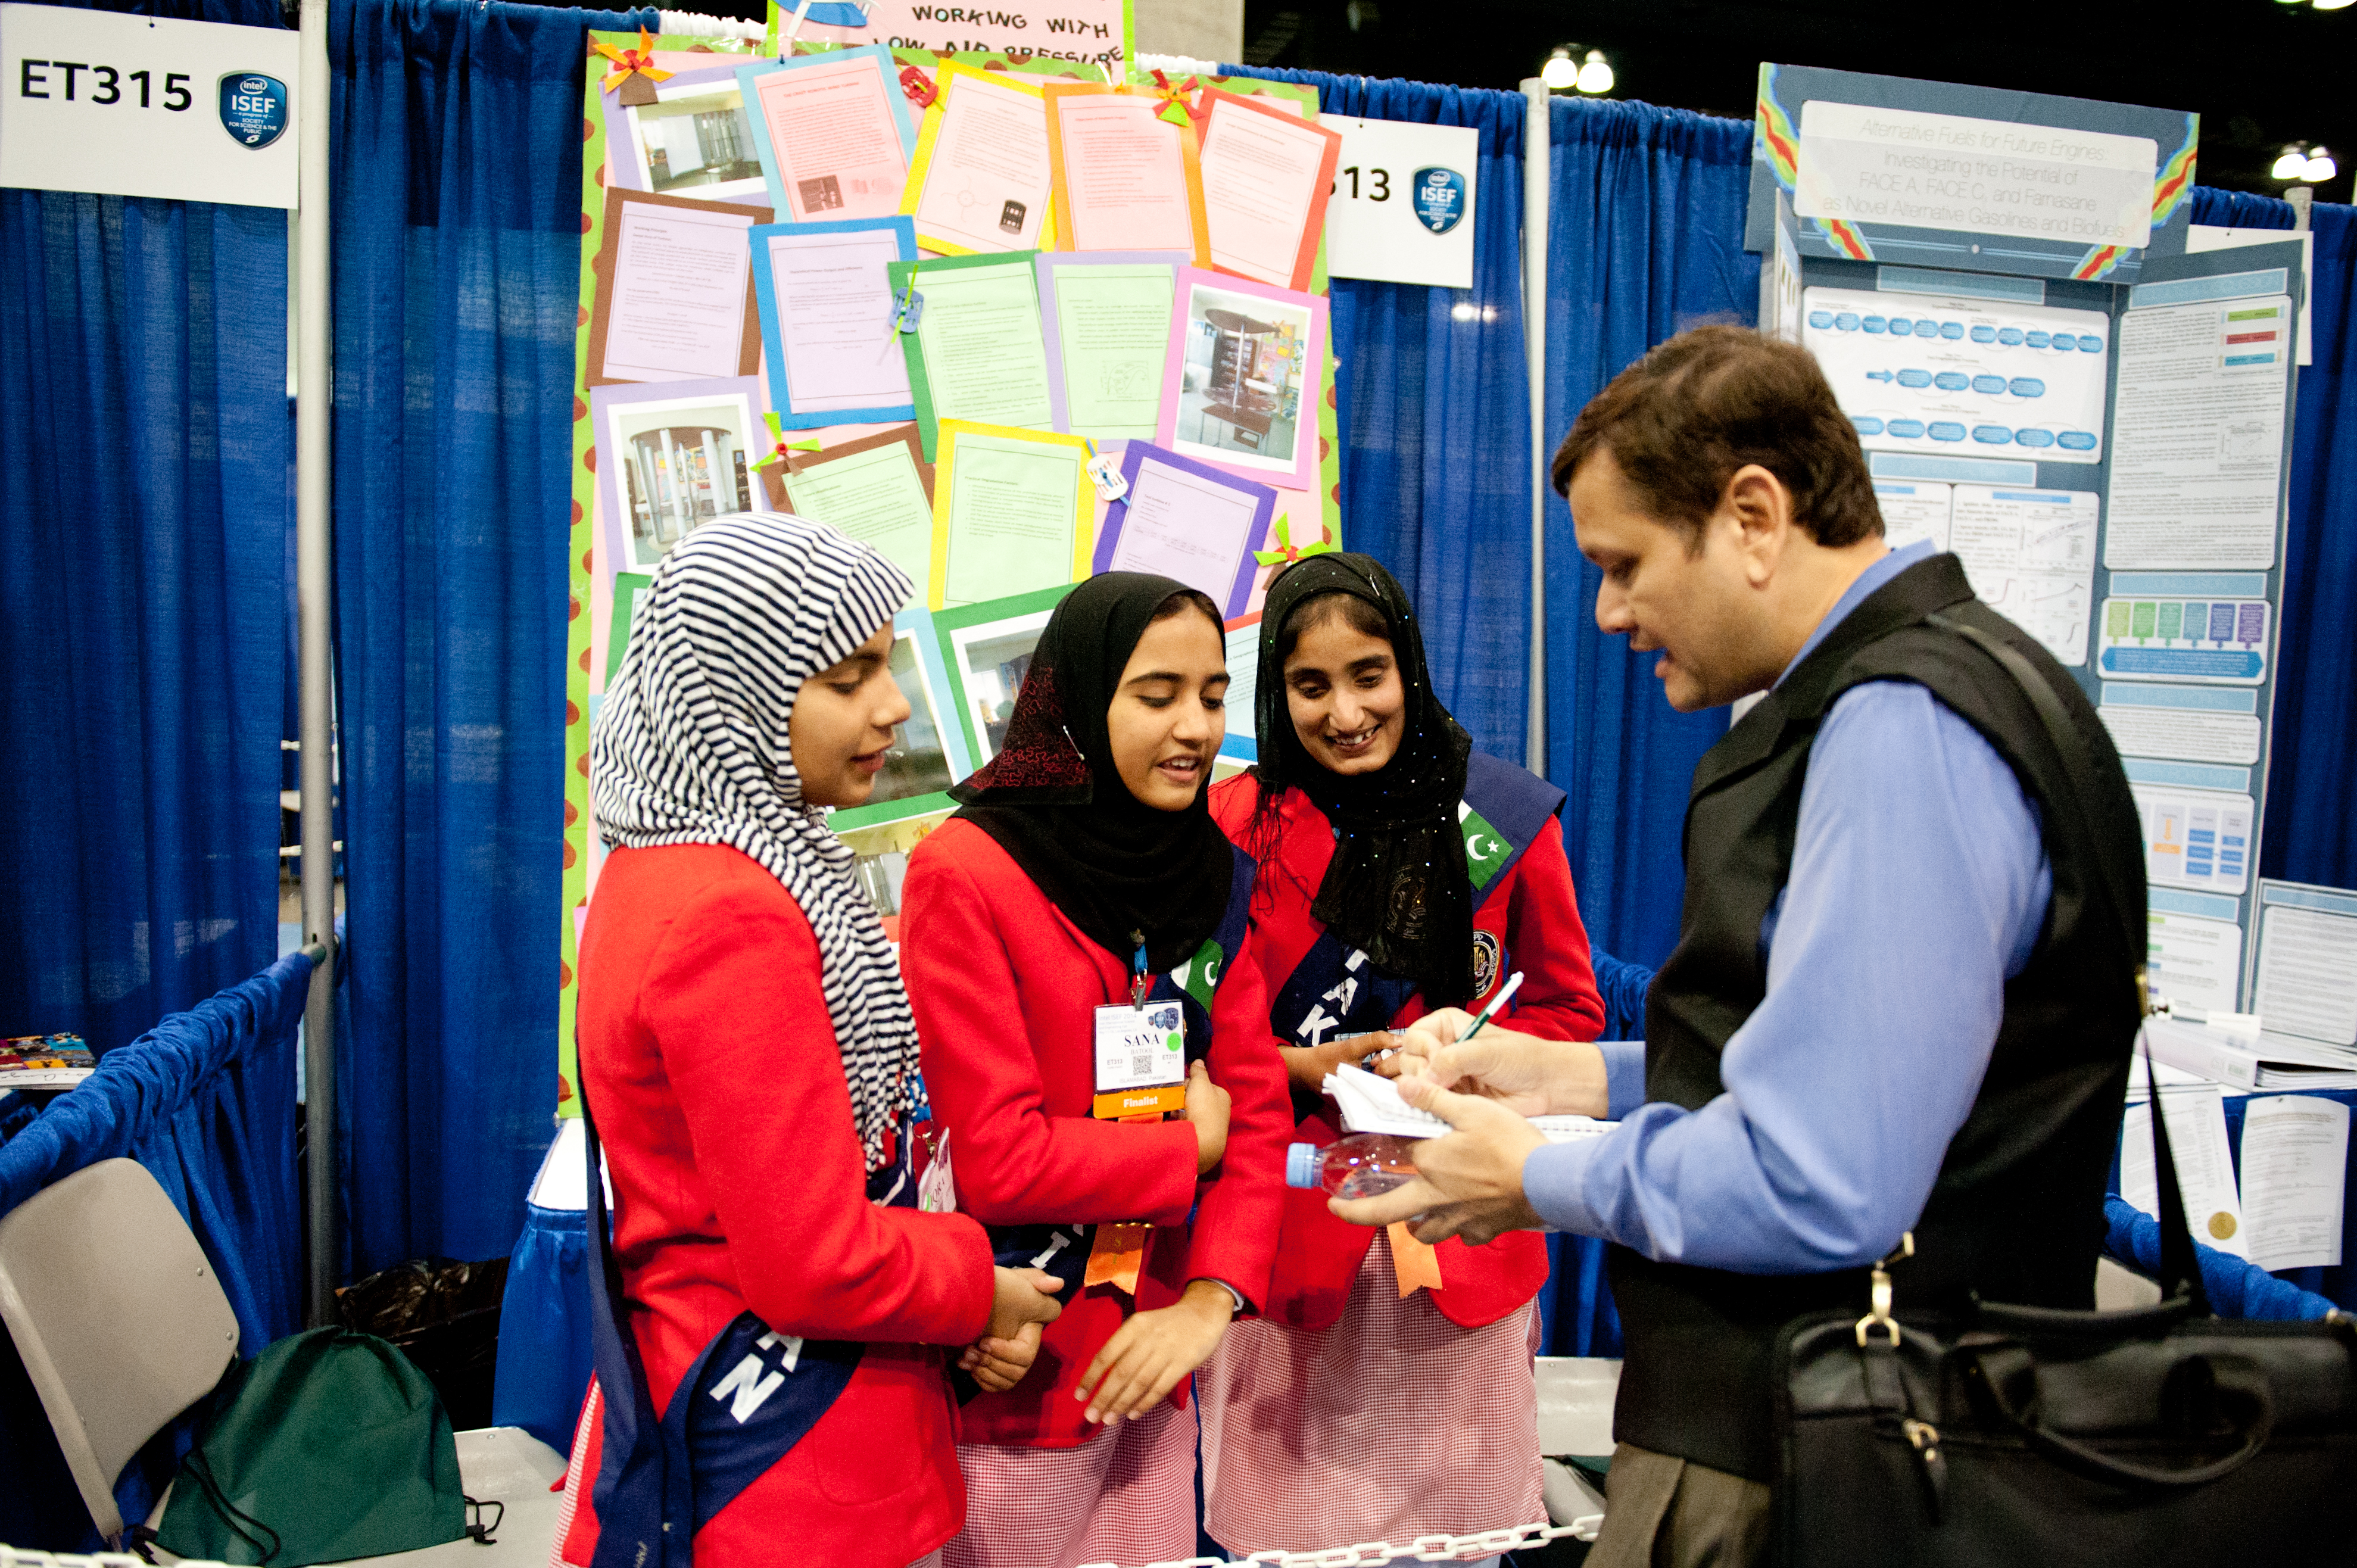 A judge speaks to participants at Intel ISEF 2014.